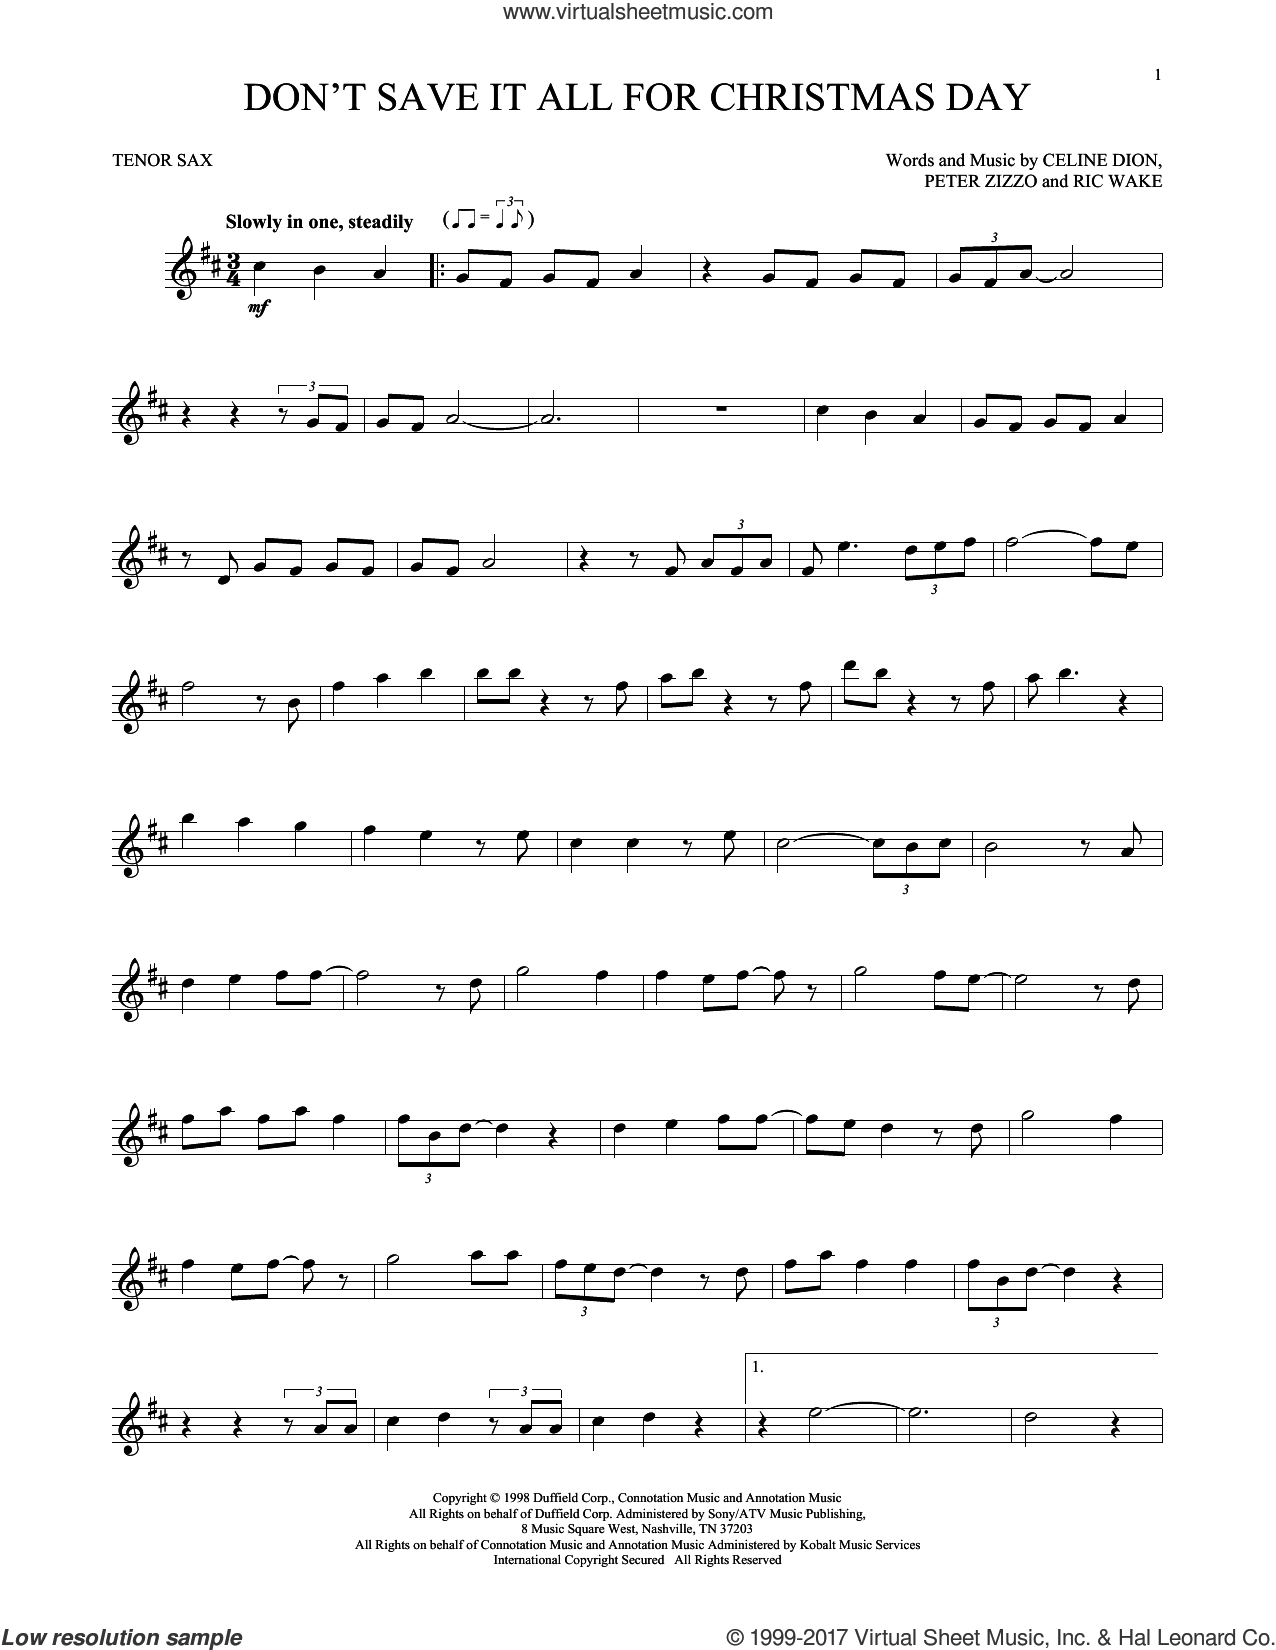 Don't Save It All For Christmas Day sheet music for tenor saxophone solo by Celine Dion, Peter Zizzo and Ric Wake. Score Image Preview.